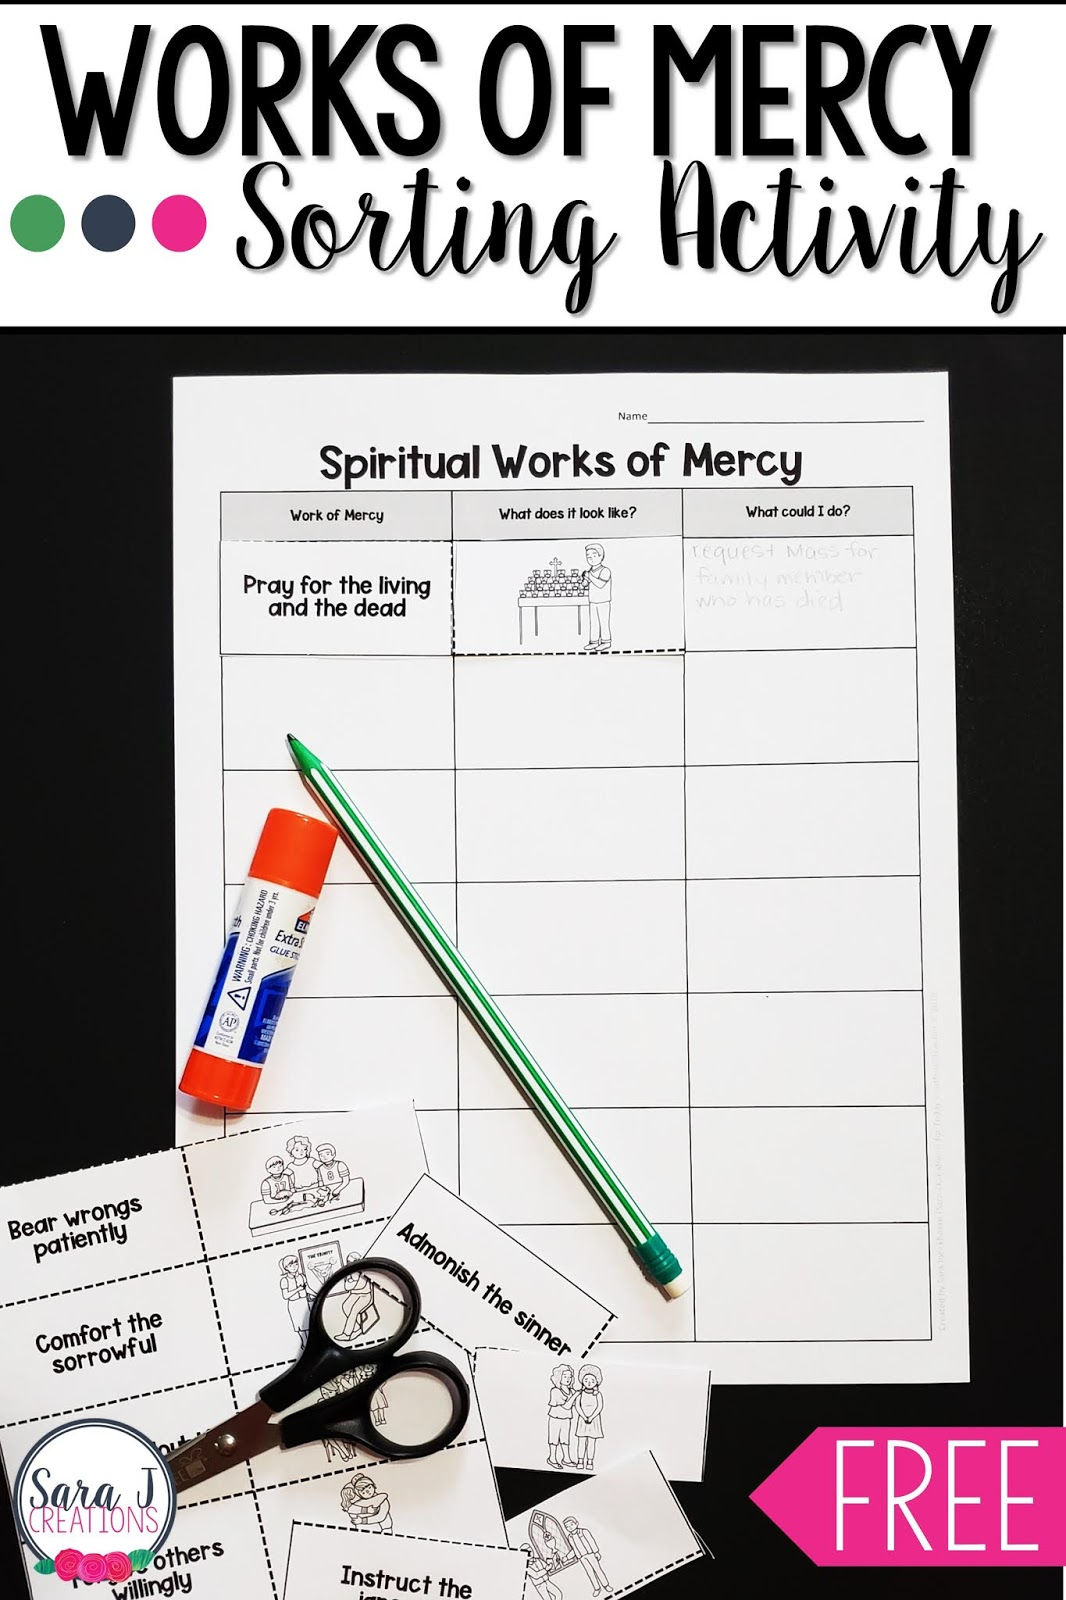 Corporal And Spiritual Works Of Mercy Sorting Activity